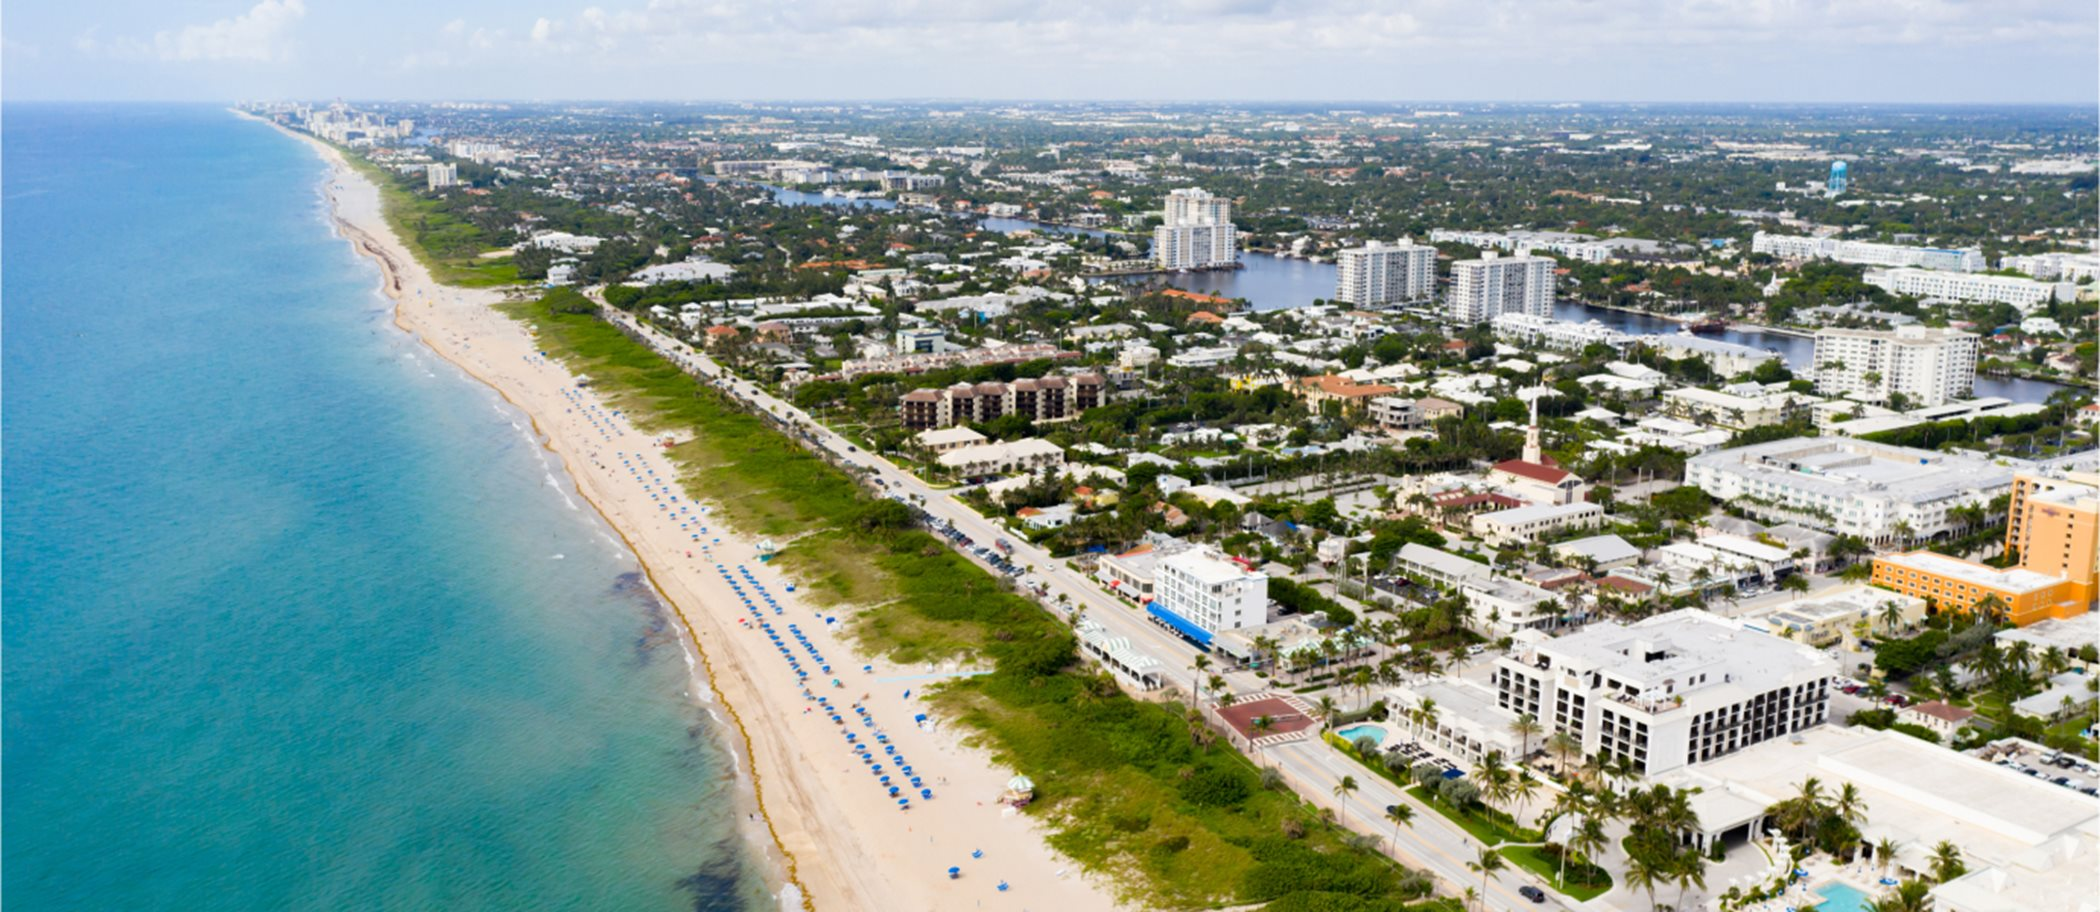 View of Delray Beach